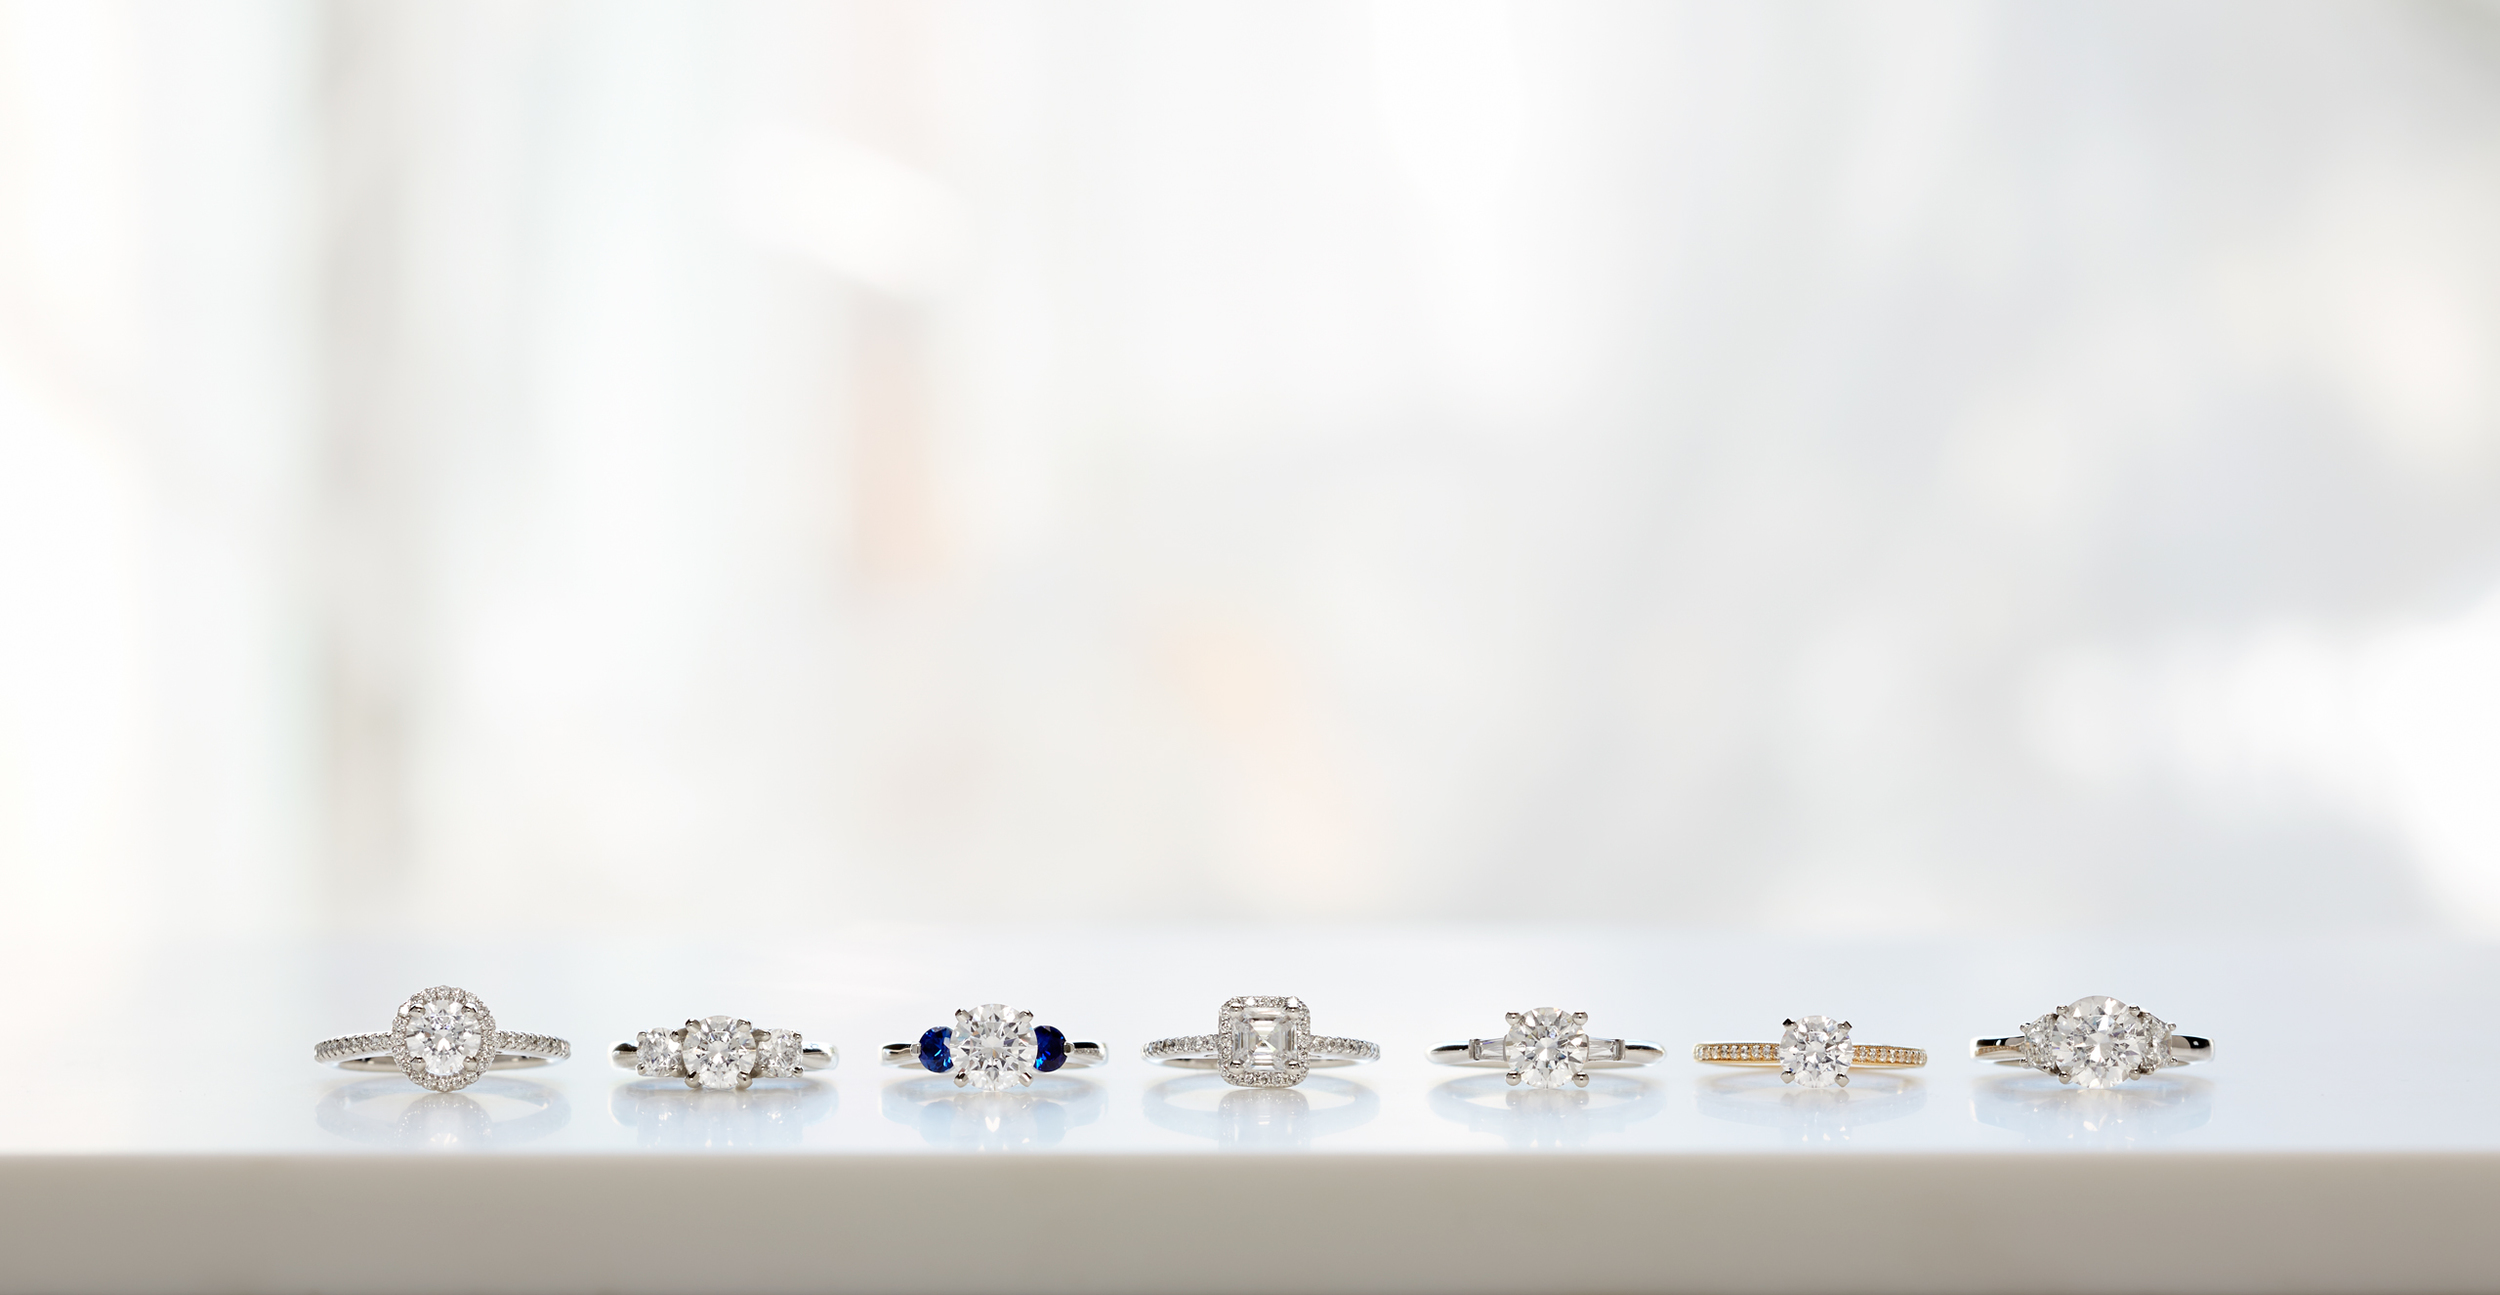 Product photography Jewelry Derek Israelsen Rings on Table